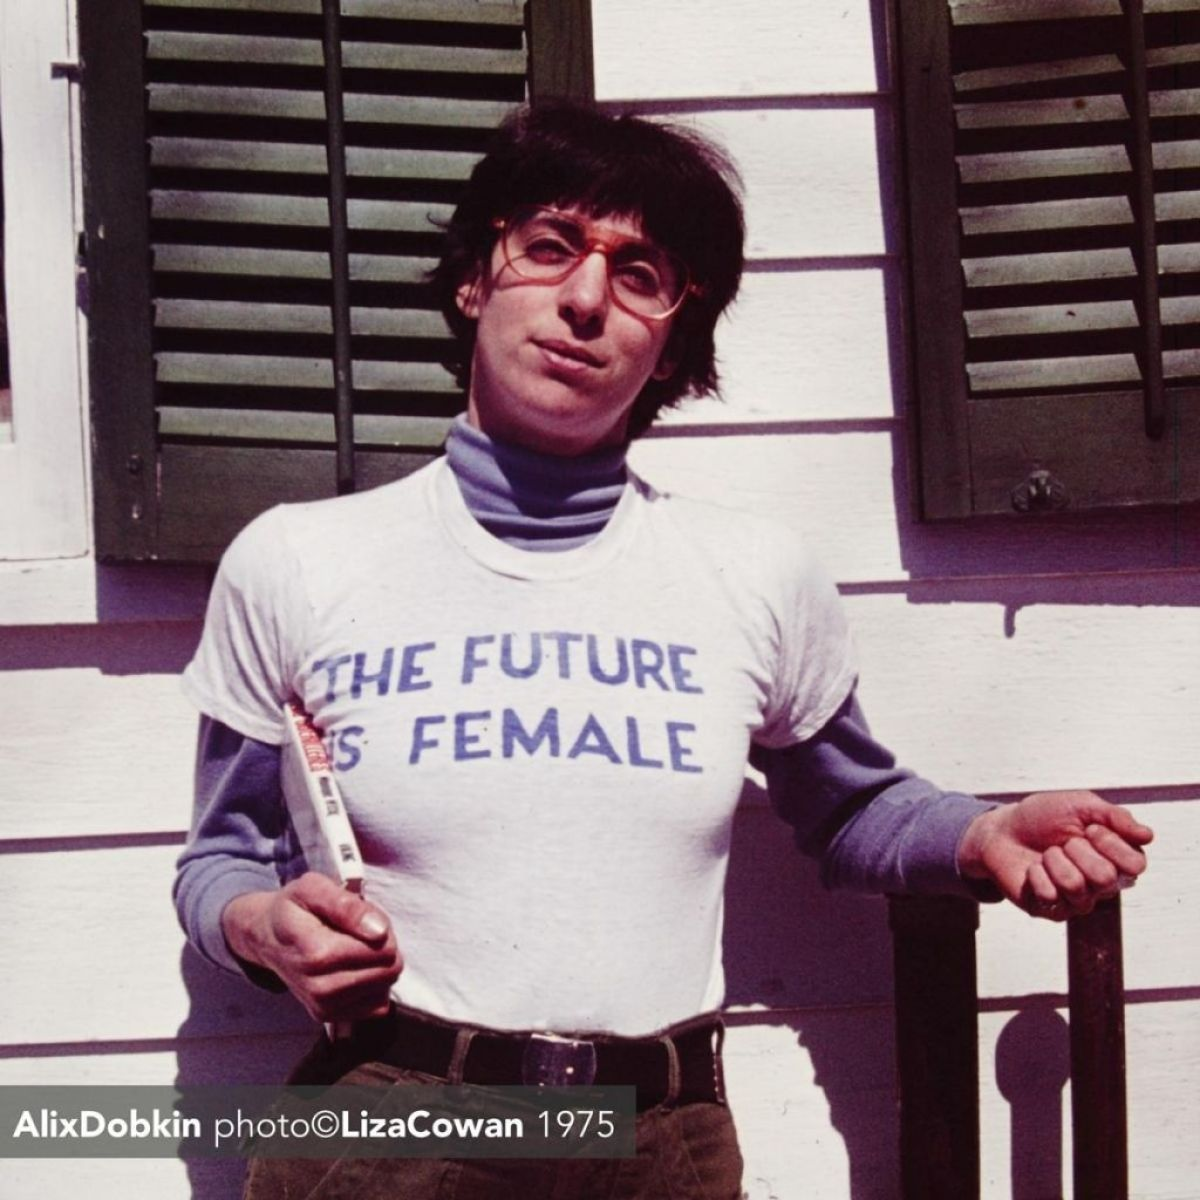 the-future-is-female-the-famous-vintage-feminist-t-shirt-design-at-the-centre-of-a-high-profile-row-body-image-1449471776 (1)